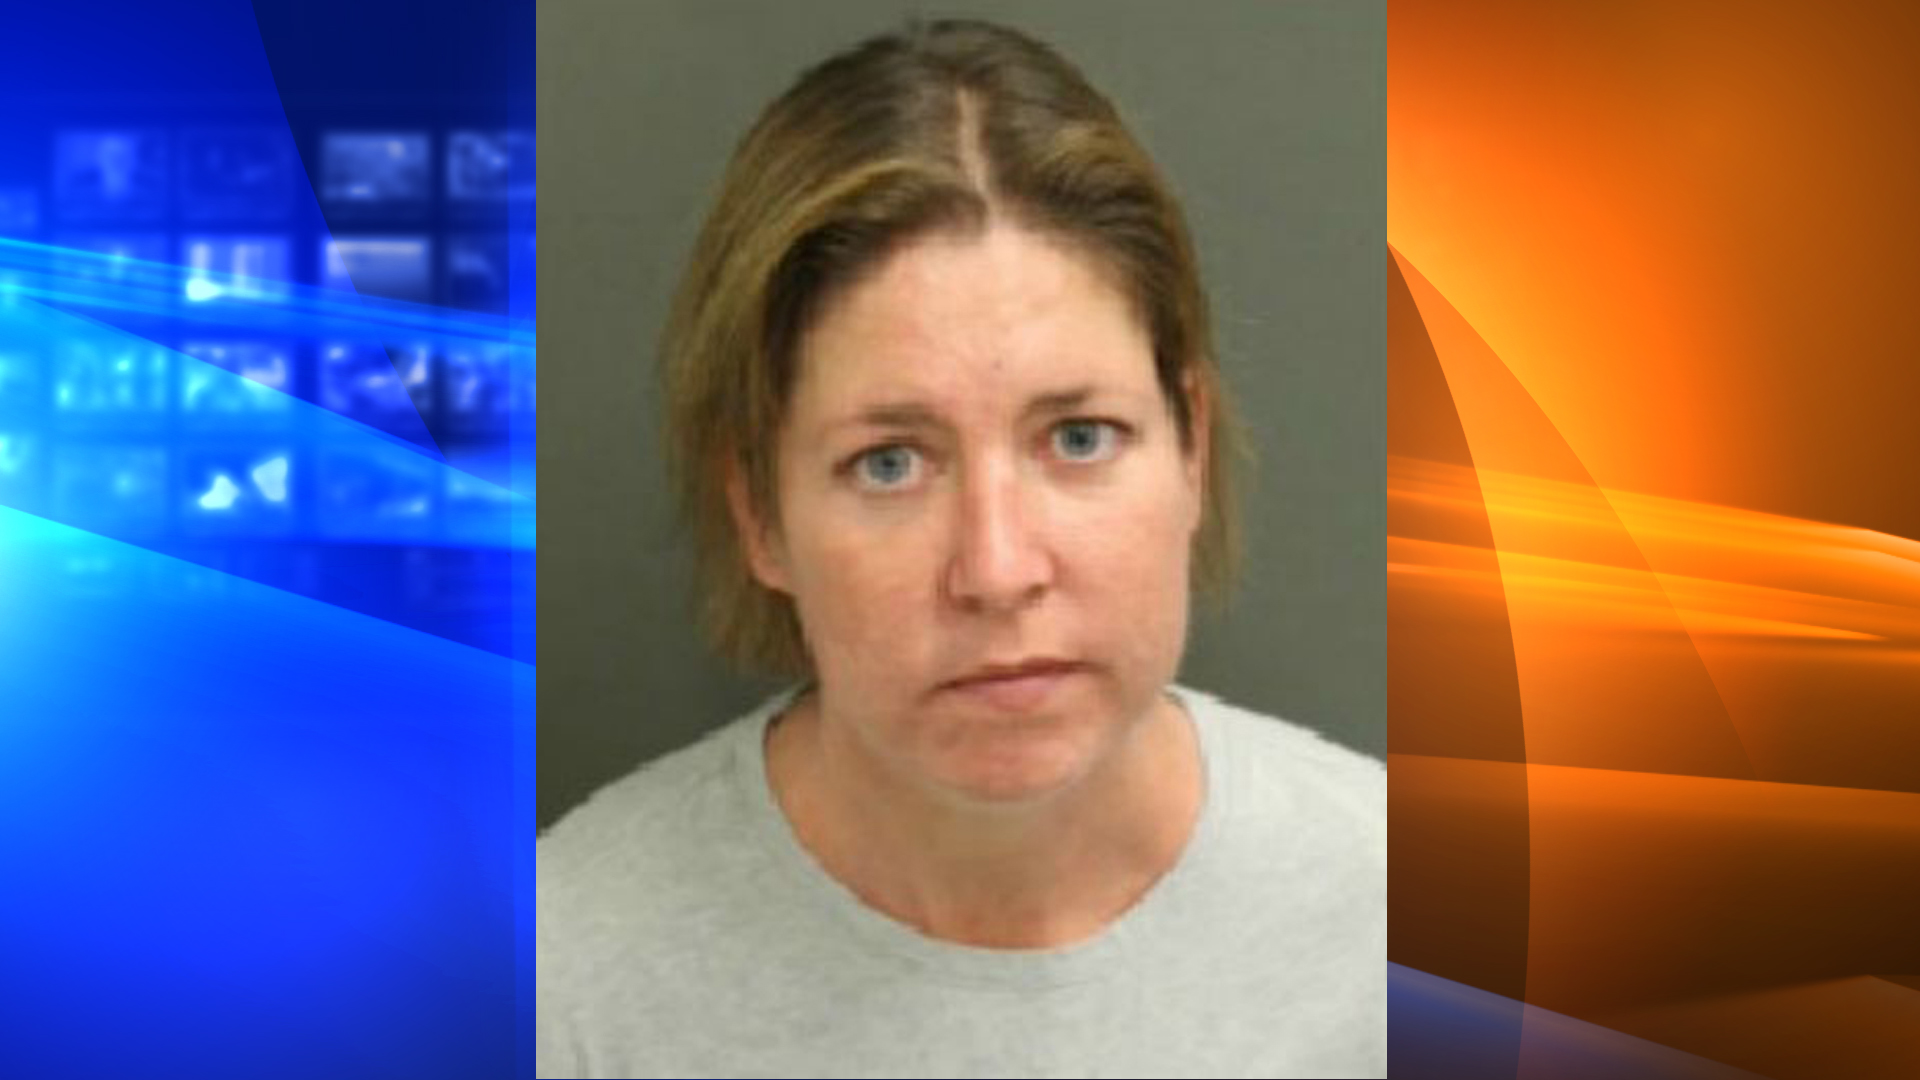 The Orange County Sheriff's Office released this booking photo of Sarah Boone.